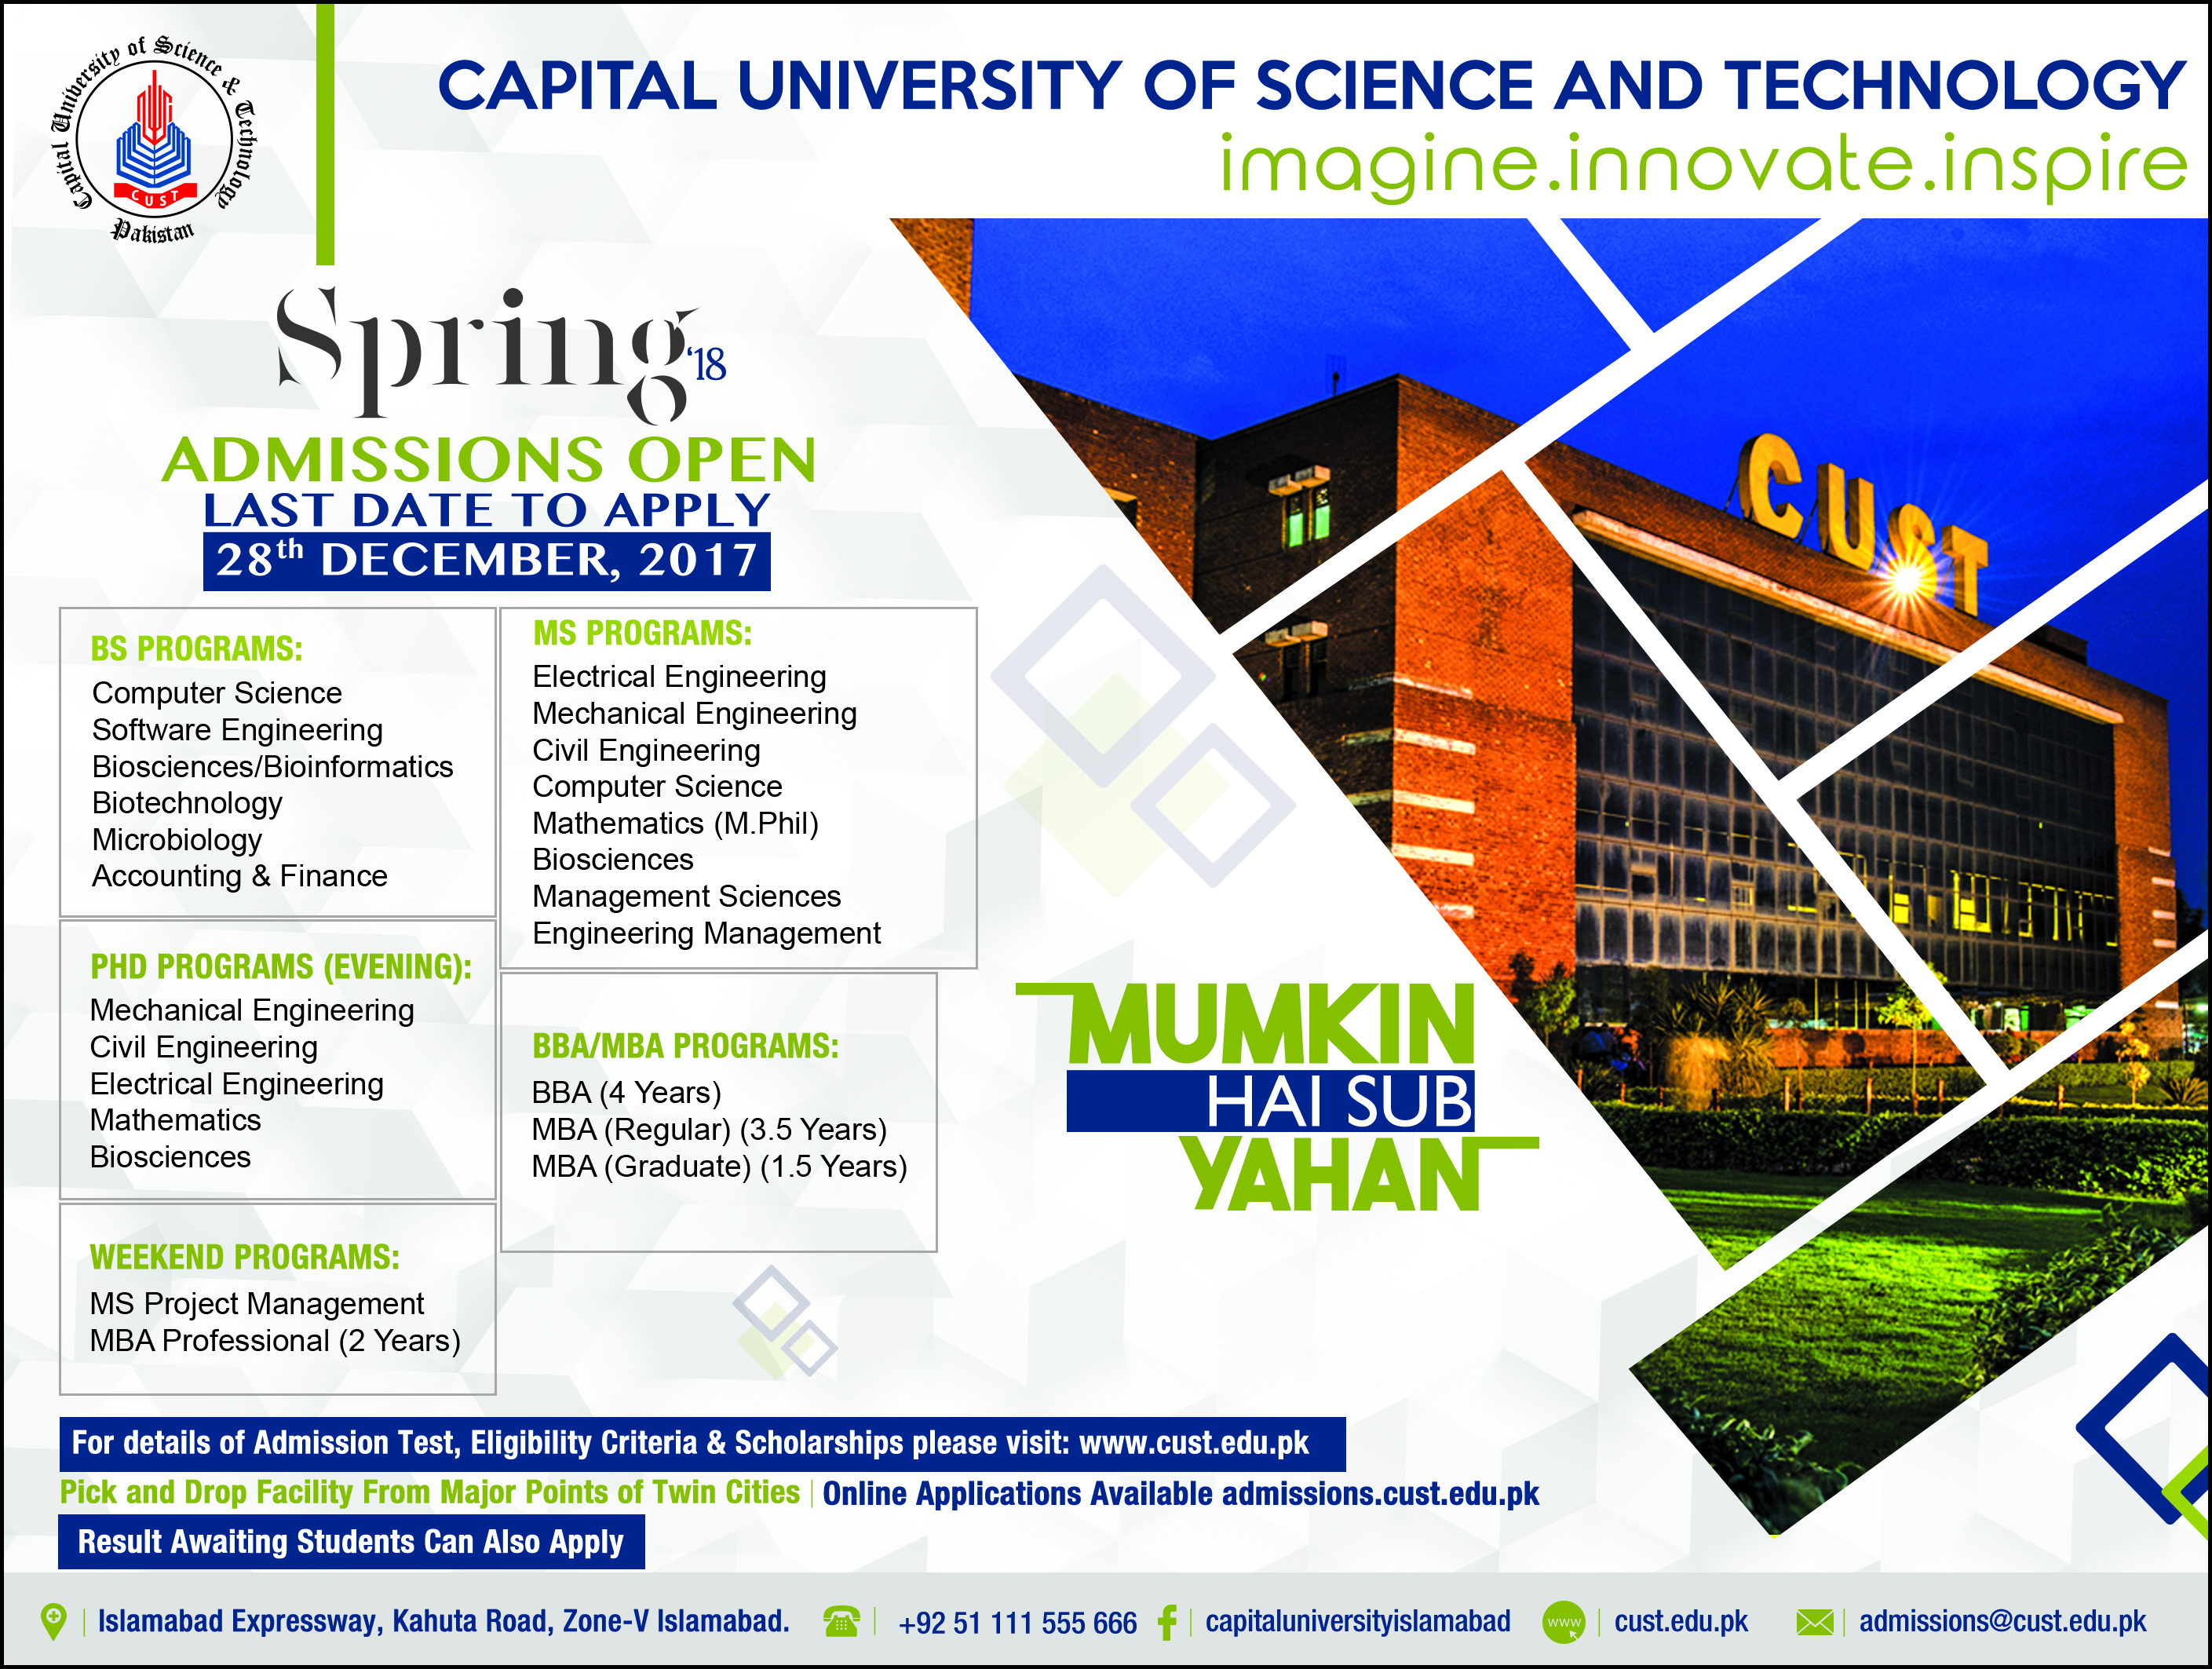 Capital University of Science and Technology Spring Admissions – 2018